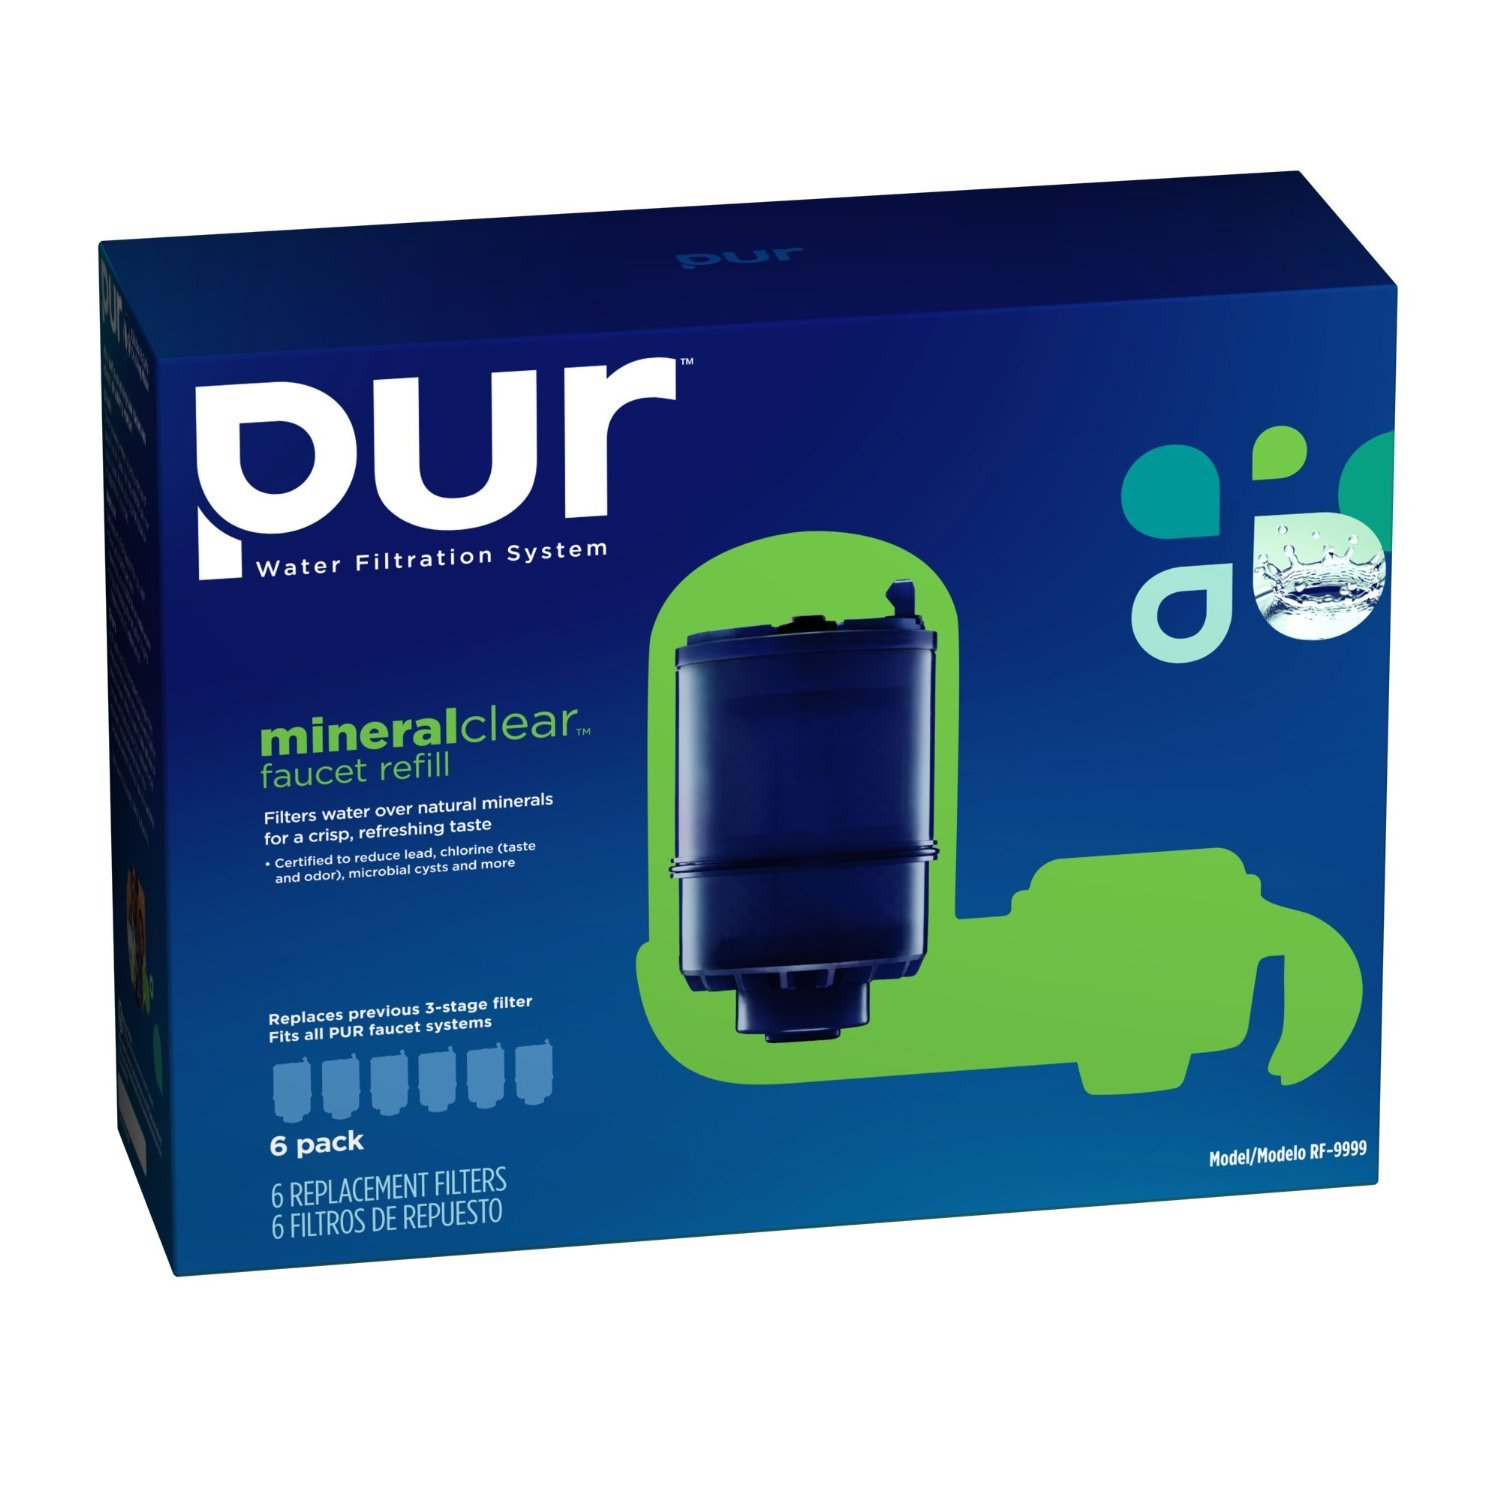 Amazon.com : PUR MineralClear Faucet Refill RF-9999, 6 Pack with ...